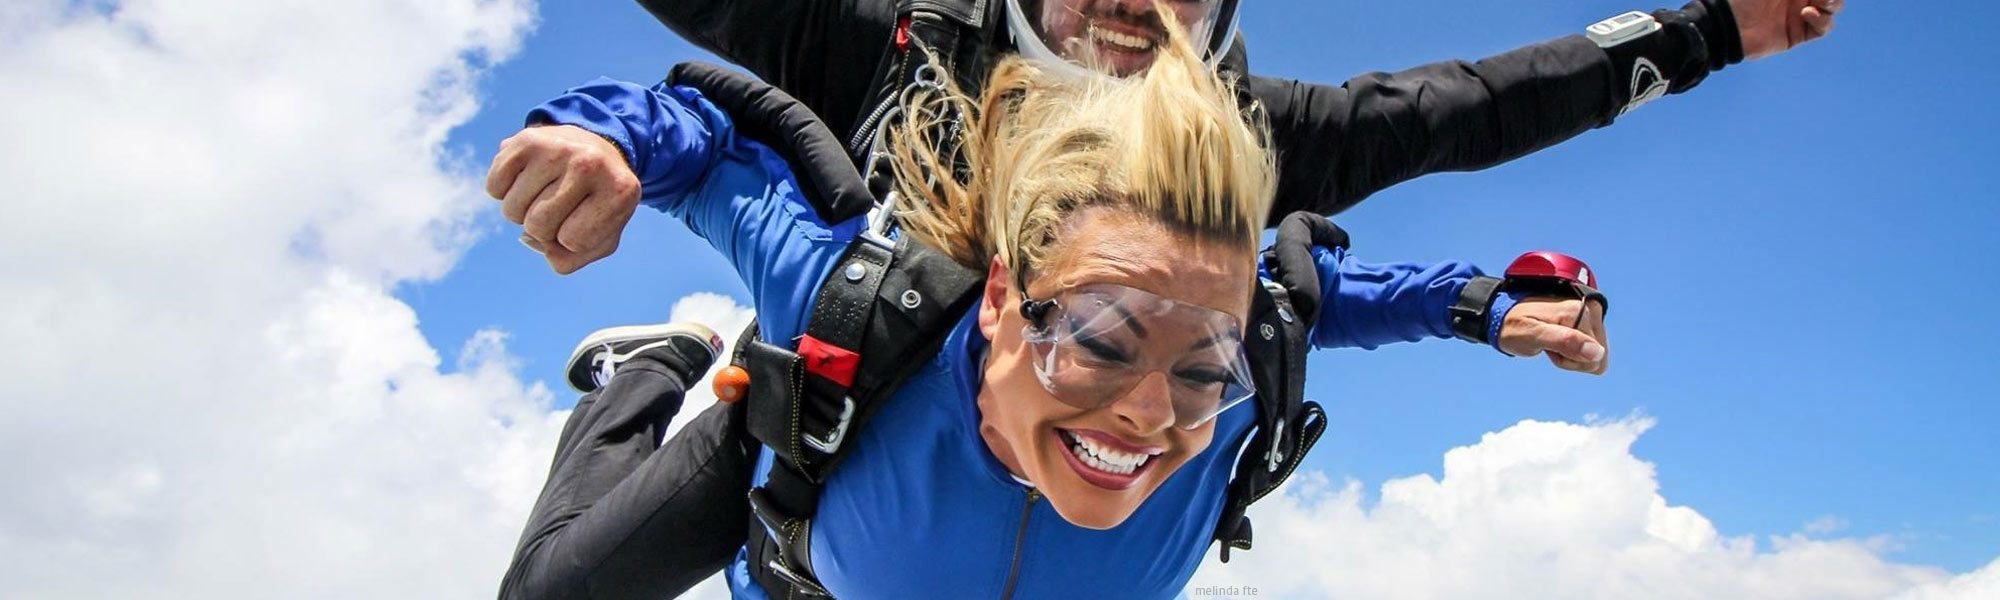 Lowest Price, Highest Skydive in Atlanta, Chattanooga, Birmingham